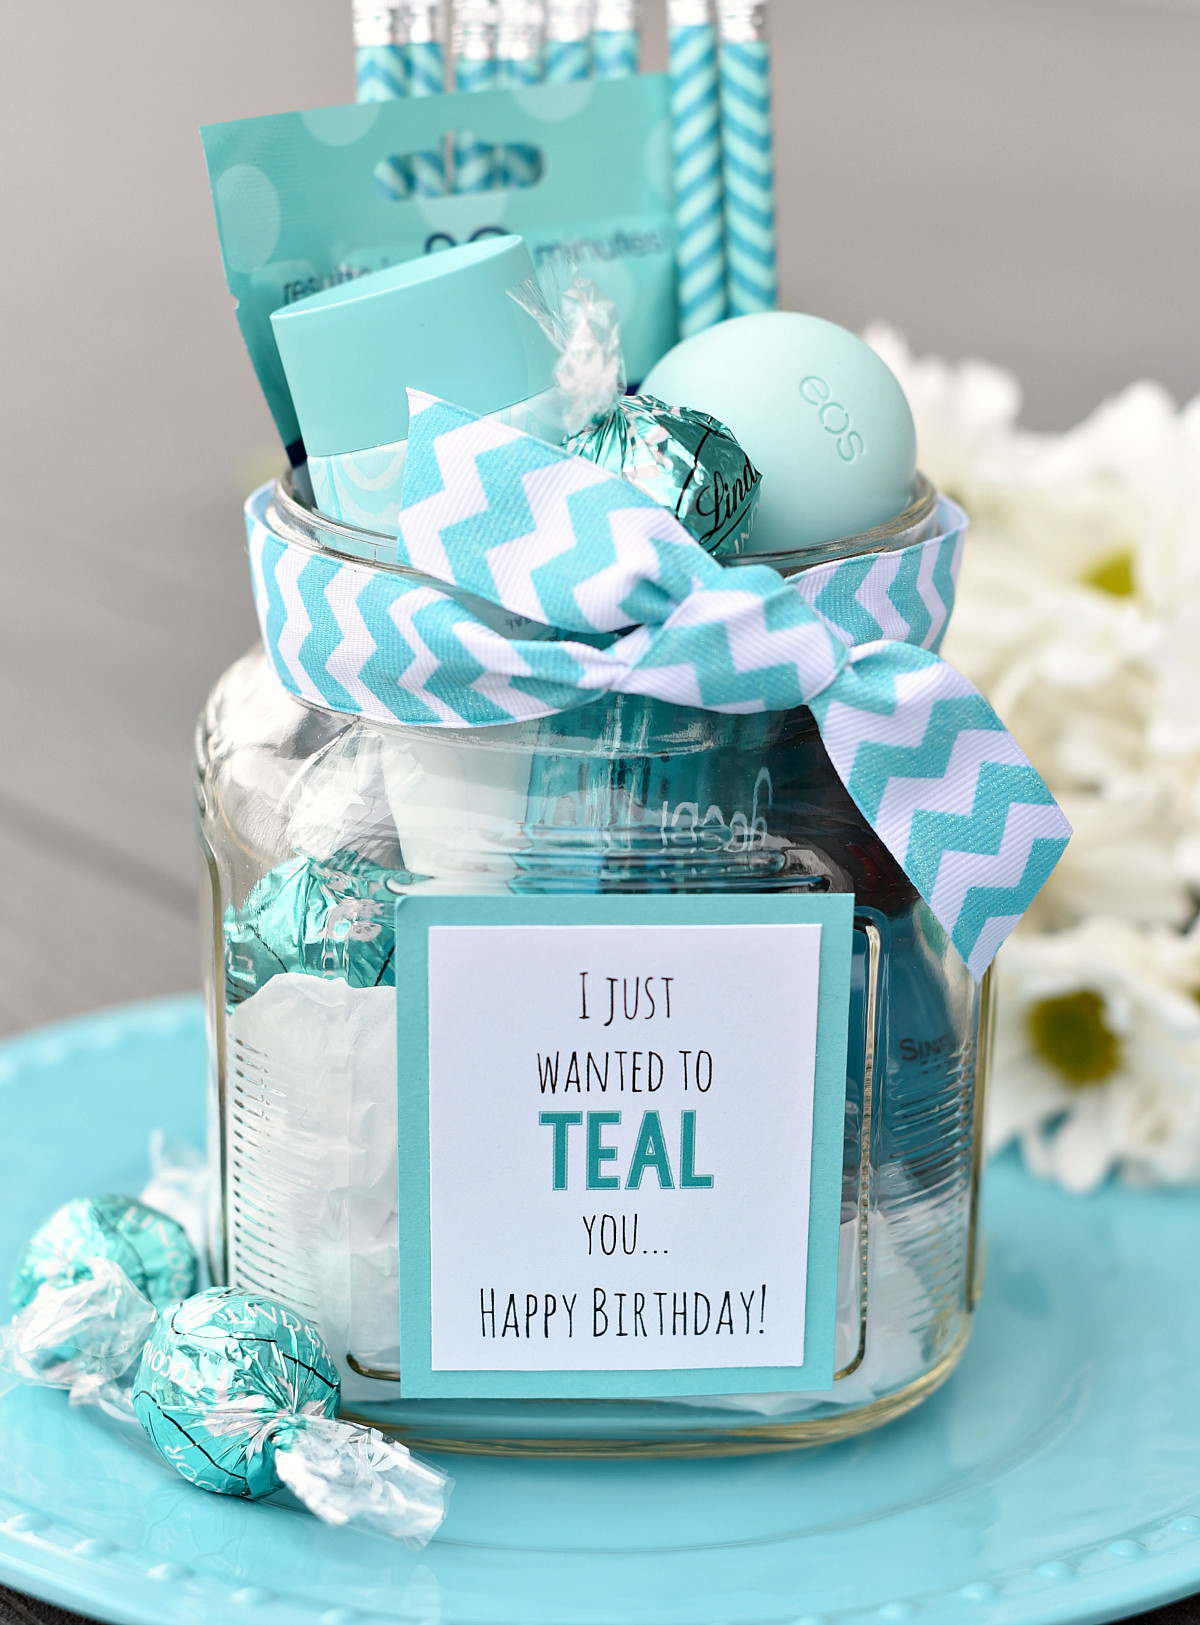 Bday Gift Ideas For Best Friend  Teal Birthday Gift Idea for Friends – Fun Squared